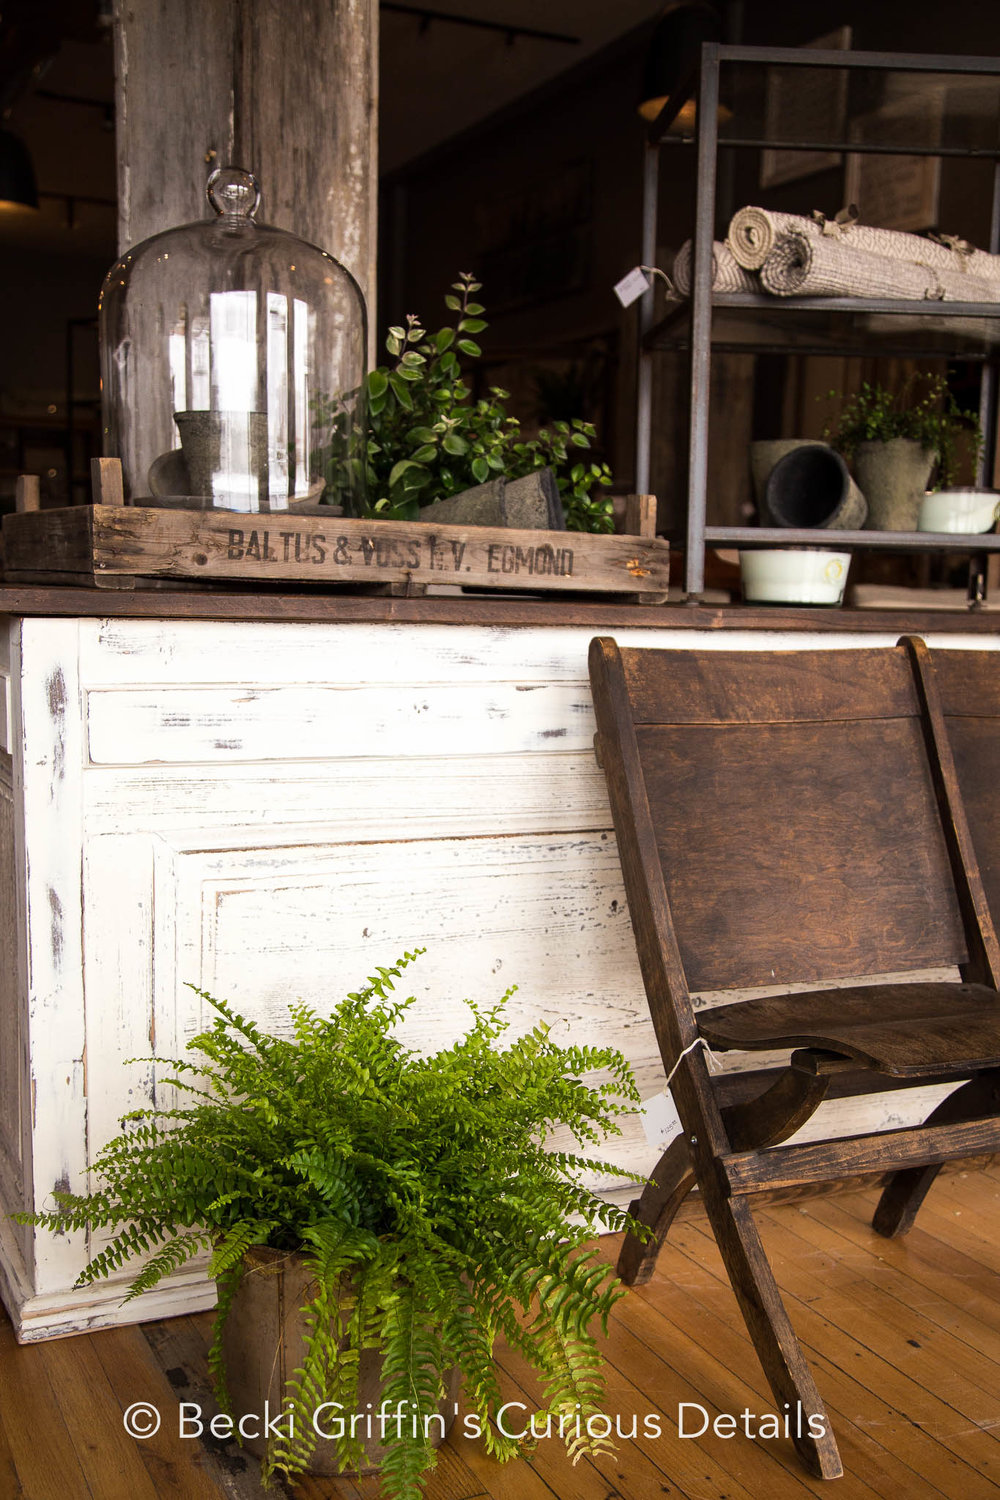 Becki Griffin's Curious Details | Old Glory Antiques Denver